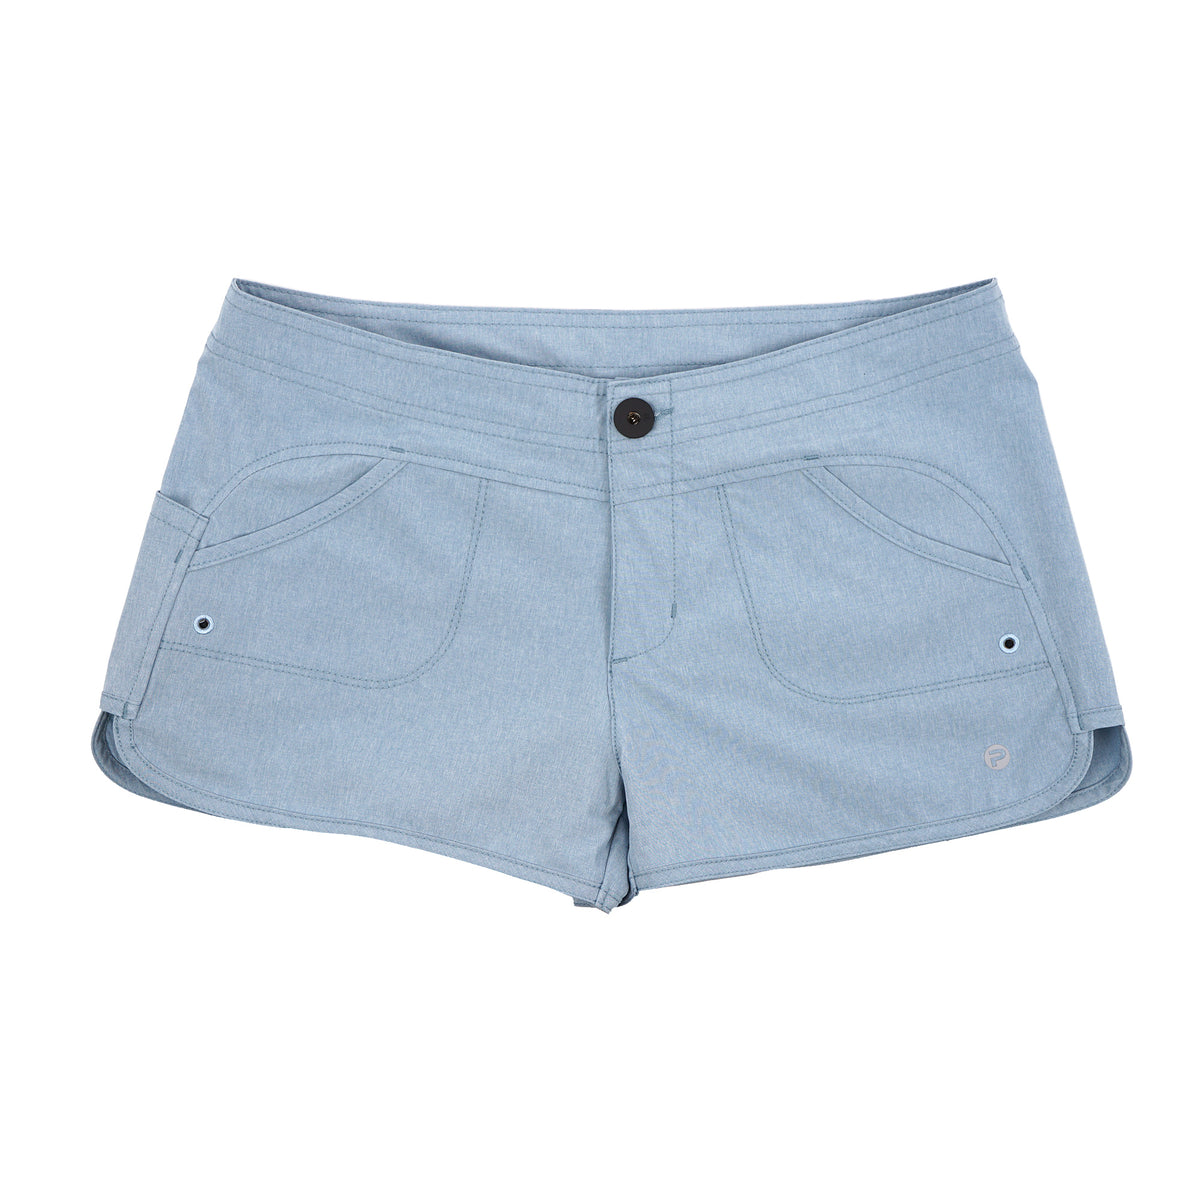 Deep Sea Hybrid Fishing Shorts - Womens Big Image - 6